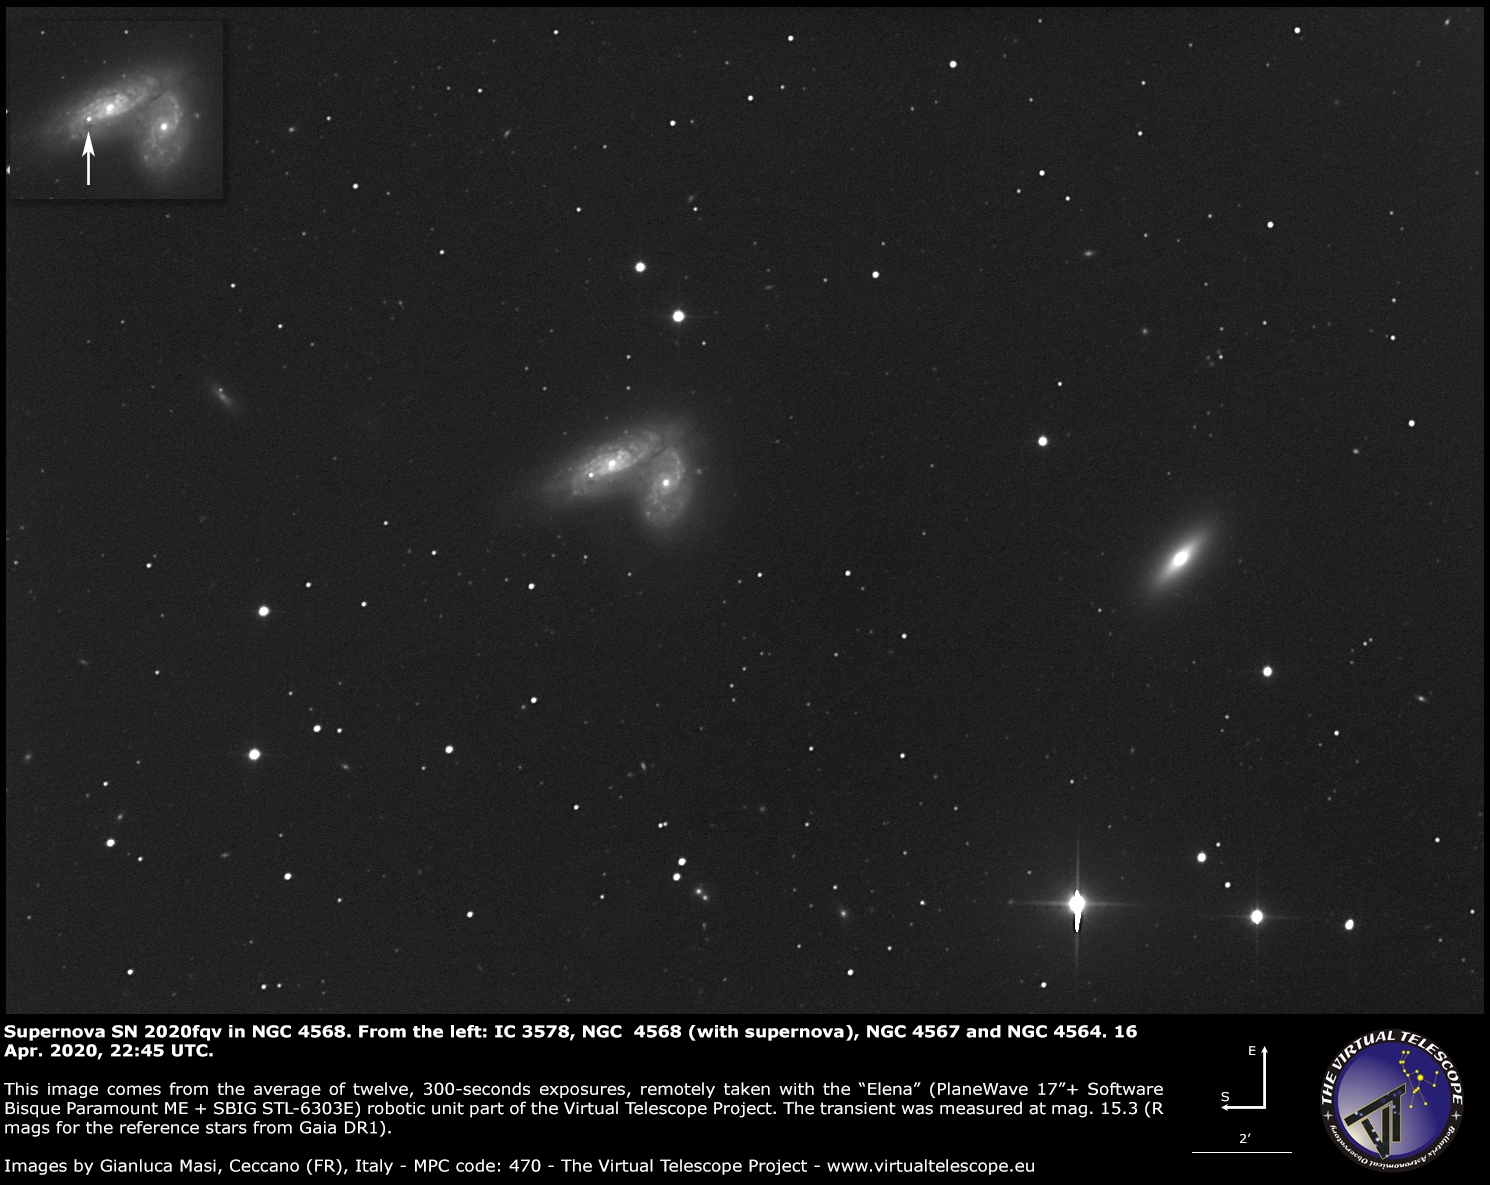 Supernova SN 2020fqv in NGC 4568: a image - 16 Apr. 2020